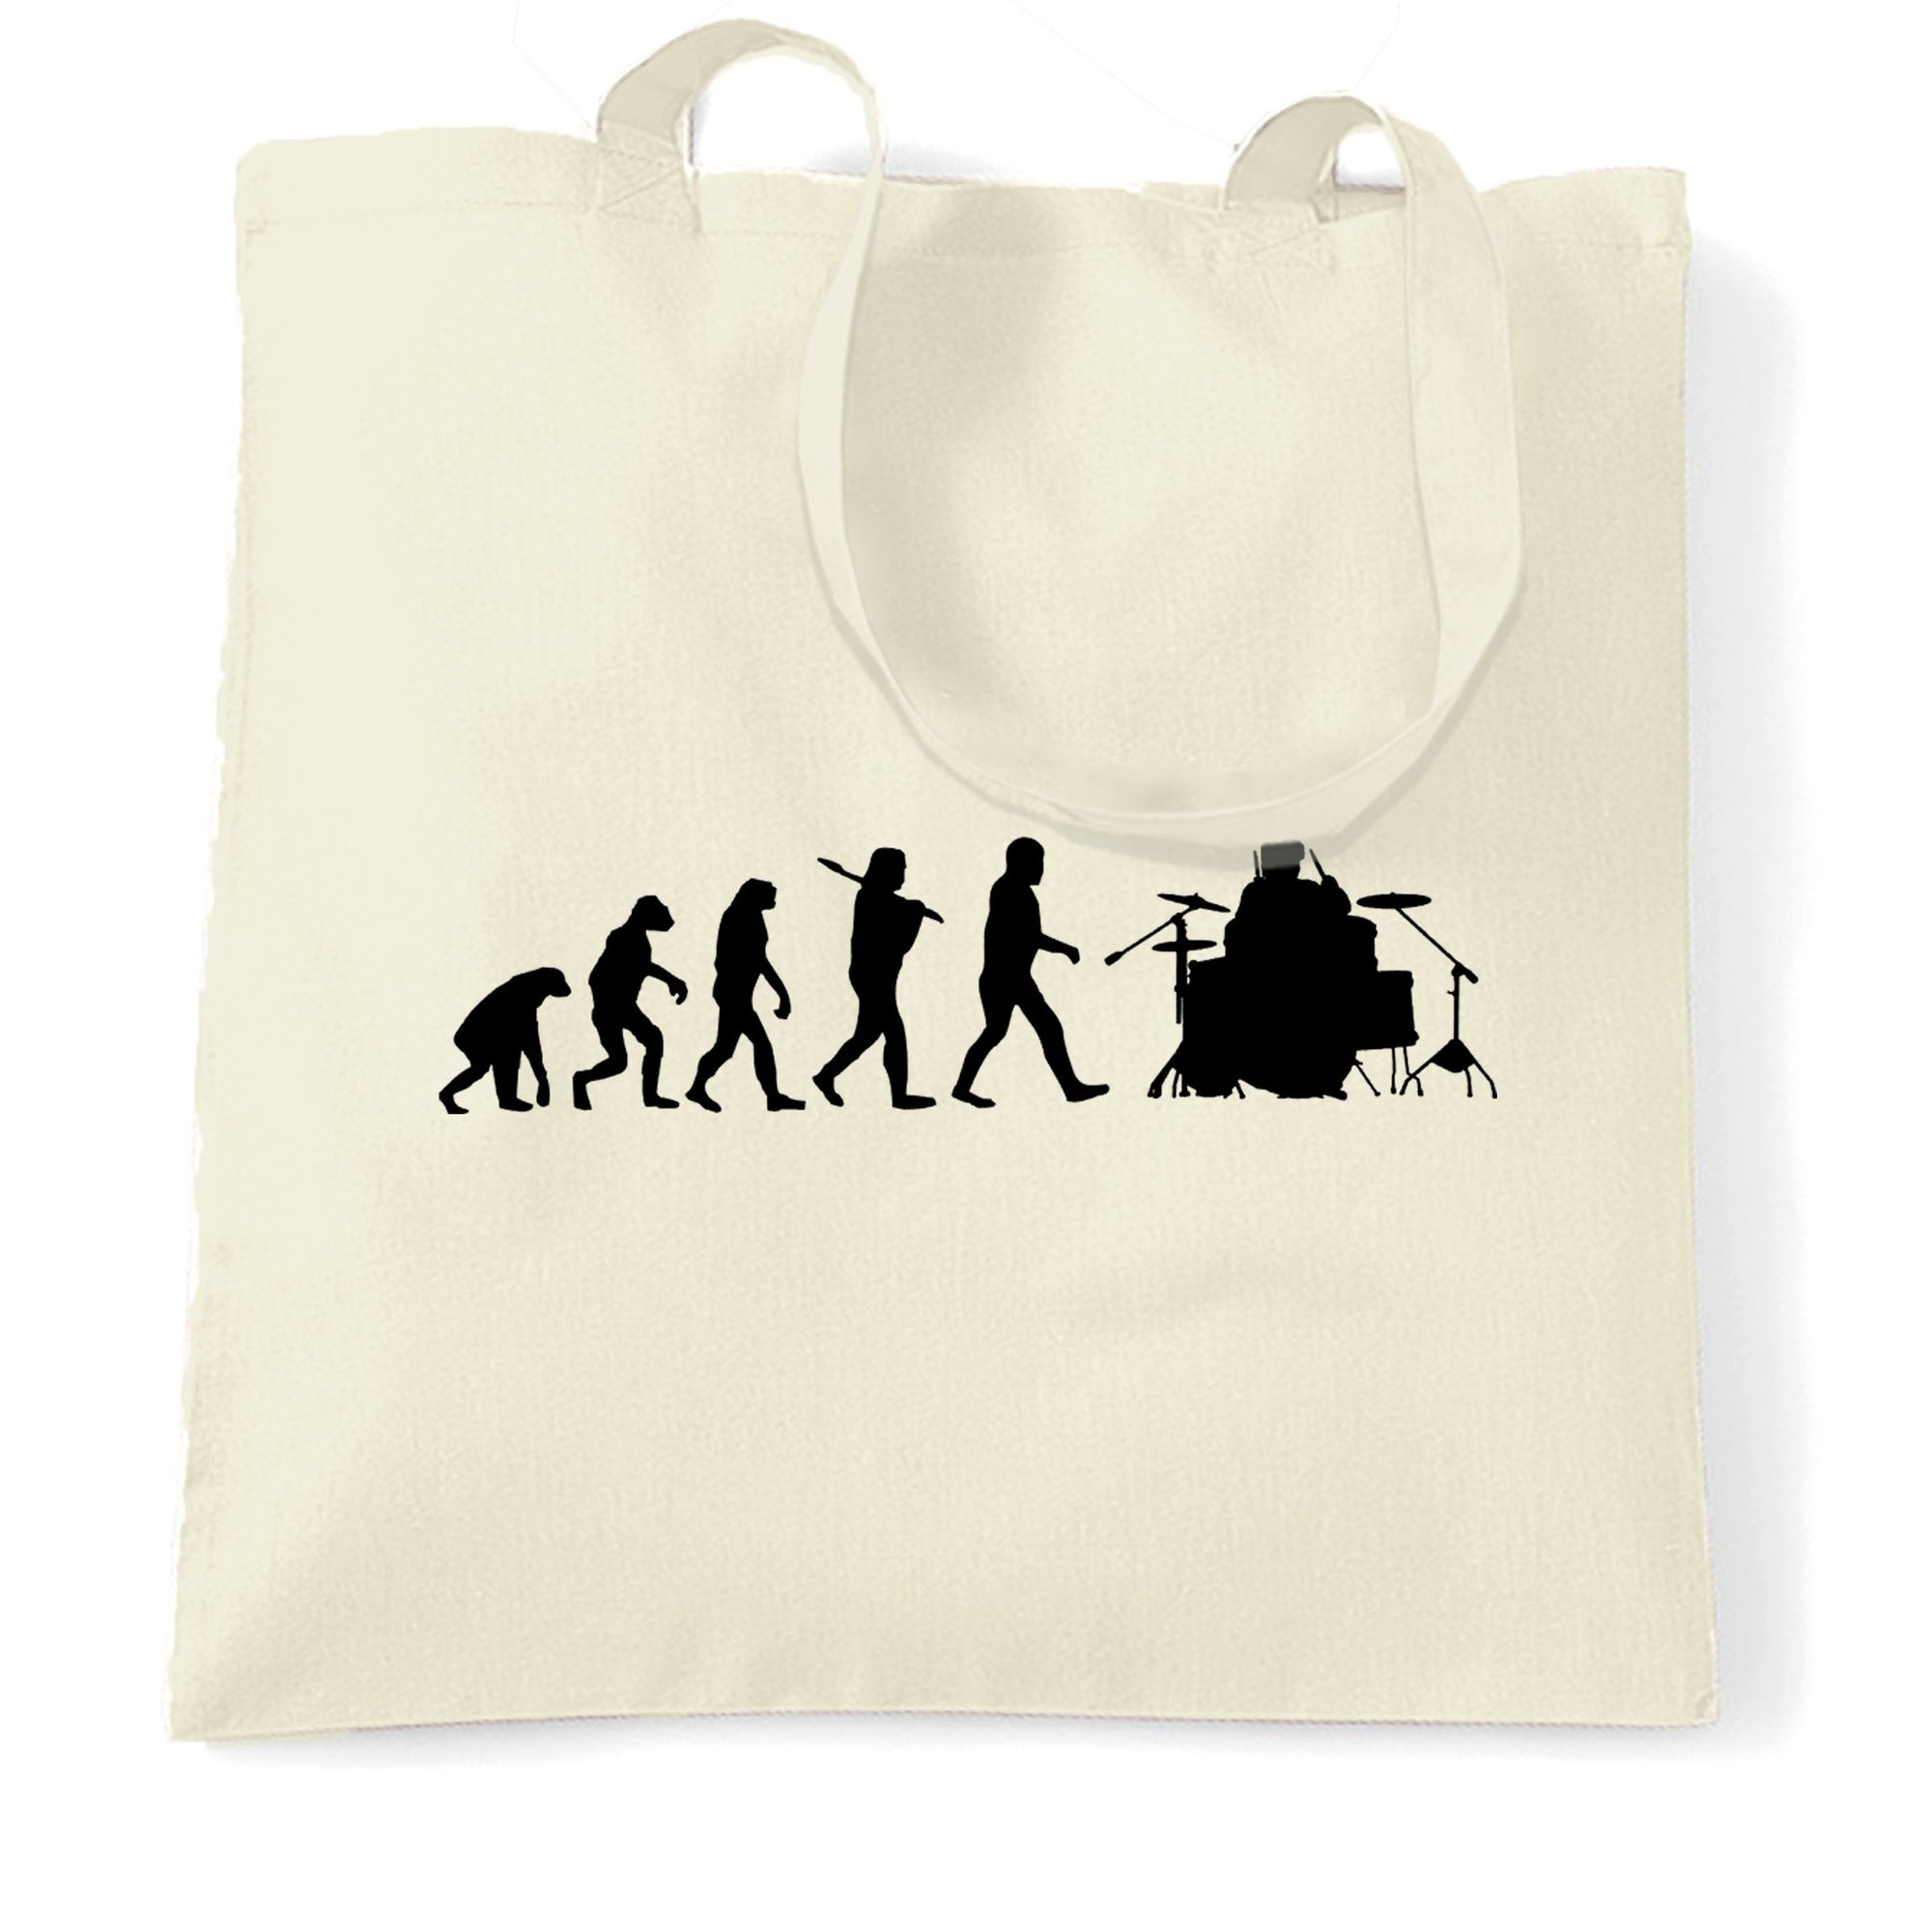 Musician Tote Bag Evolution Of A Drummer